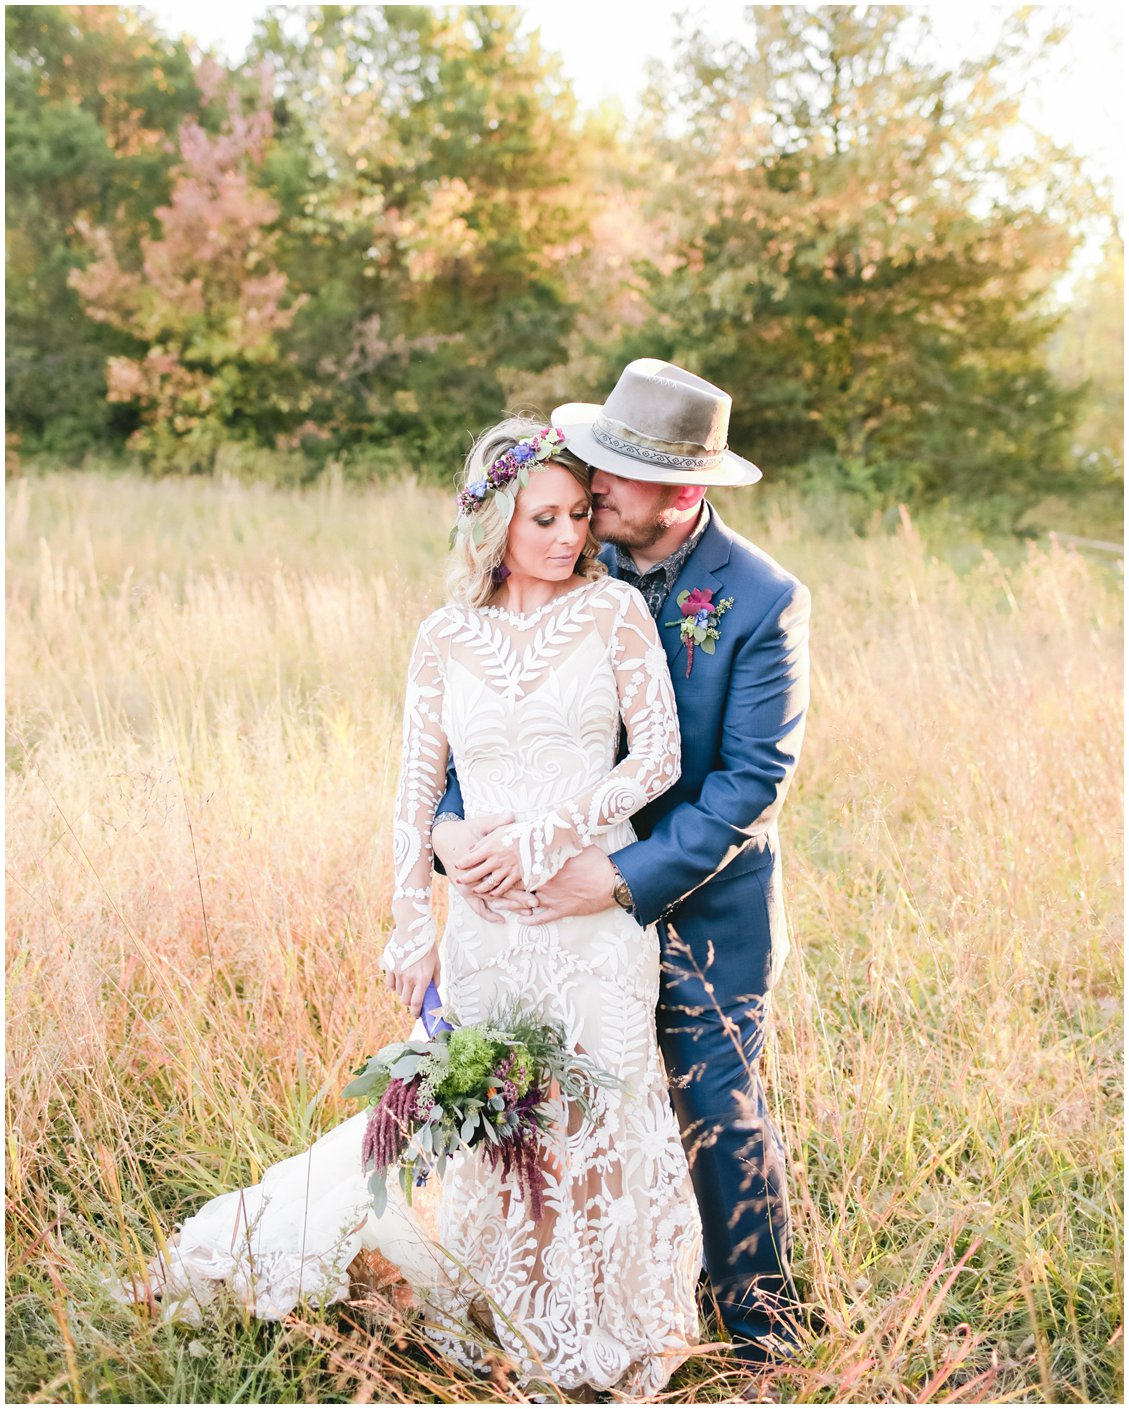 Bohemian outdoor fall wedding at Cedar Creek in southern Missouri captured by St Louis husband and wife team Pattengale Photography Tara & Stephen